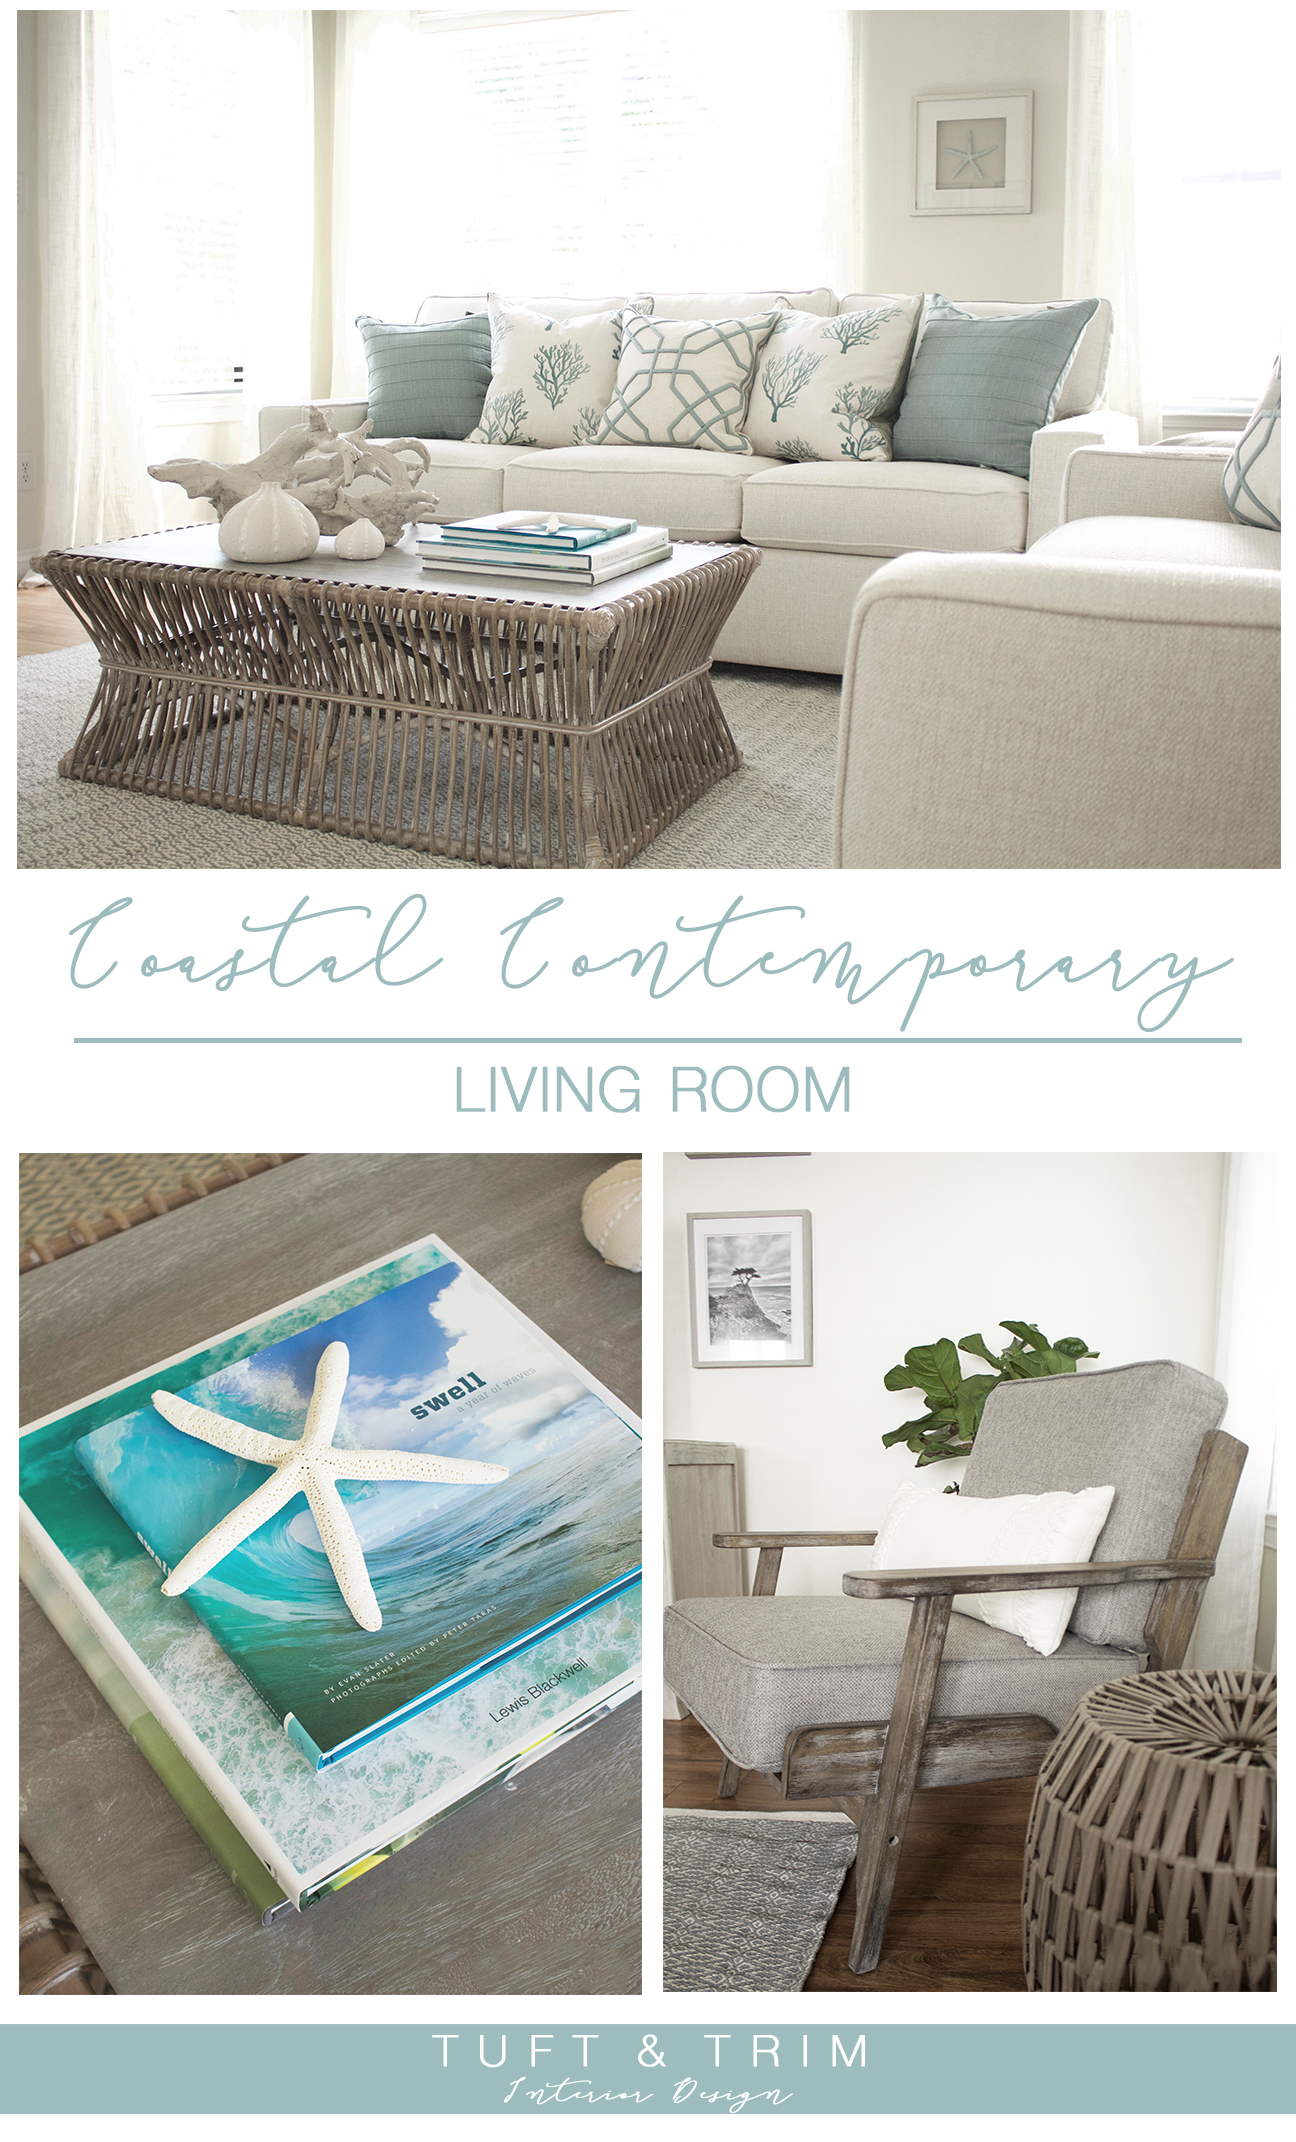 Coastal Contemporary Living Room Reveal